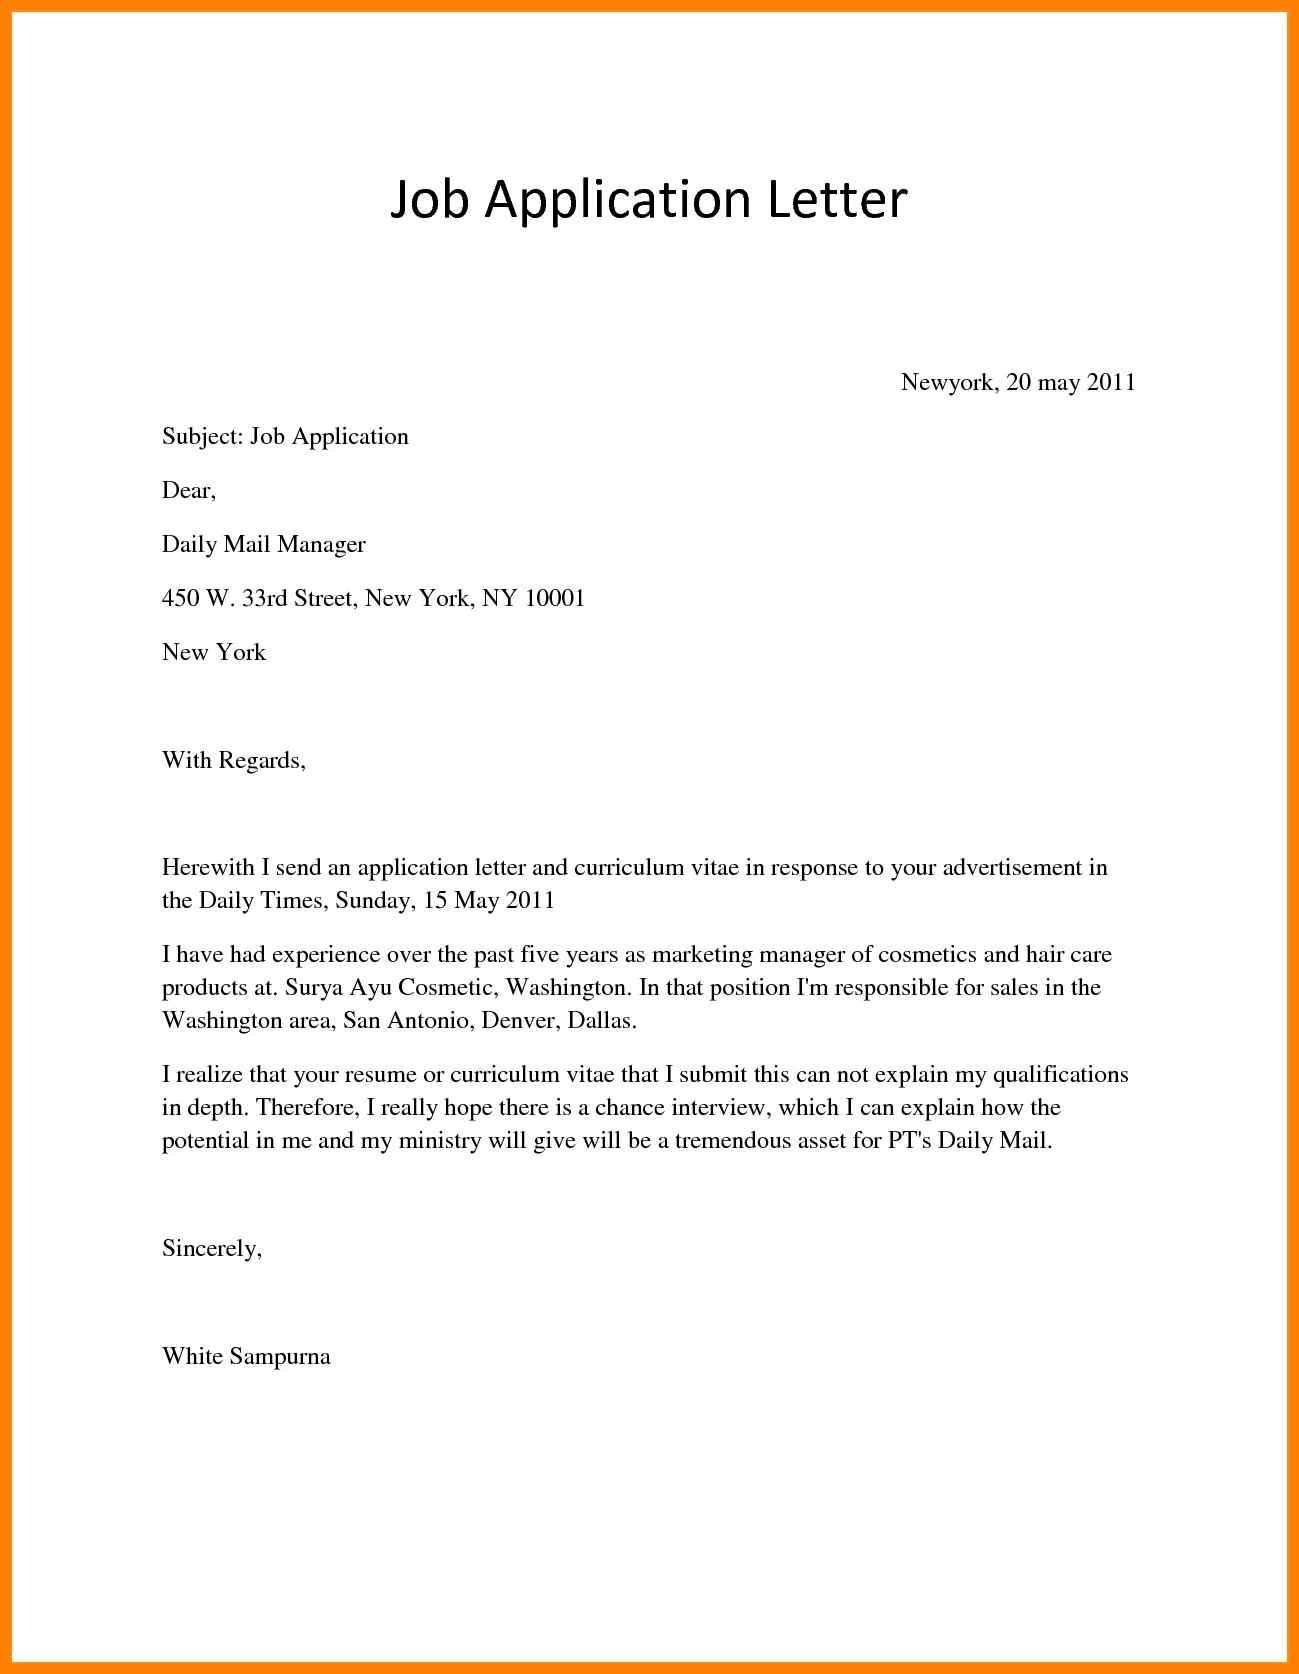 Denver Flight Attendant Cover Letter 26 Cover Letter For Applying Job Cover Letter For Applying Job